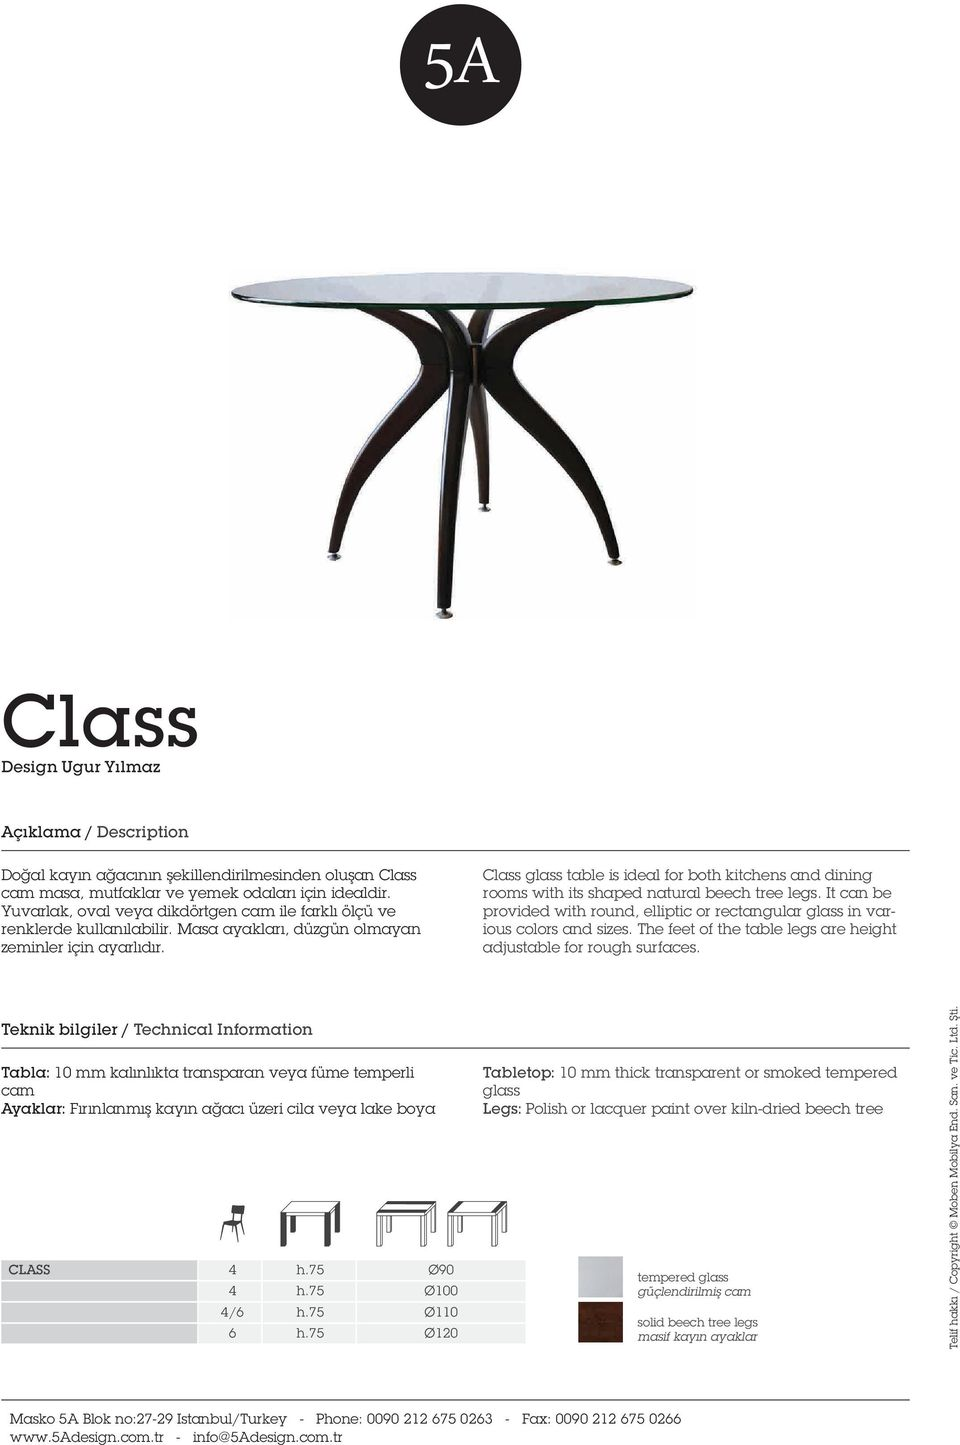 Class glass table is ideal for both kitchens and dining rooms with its shaped natural beech tree legs. It can be provided with round, elliptic or rectangular glass in various colors and sizes.